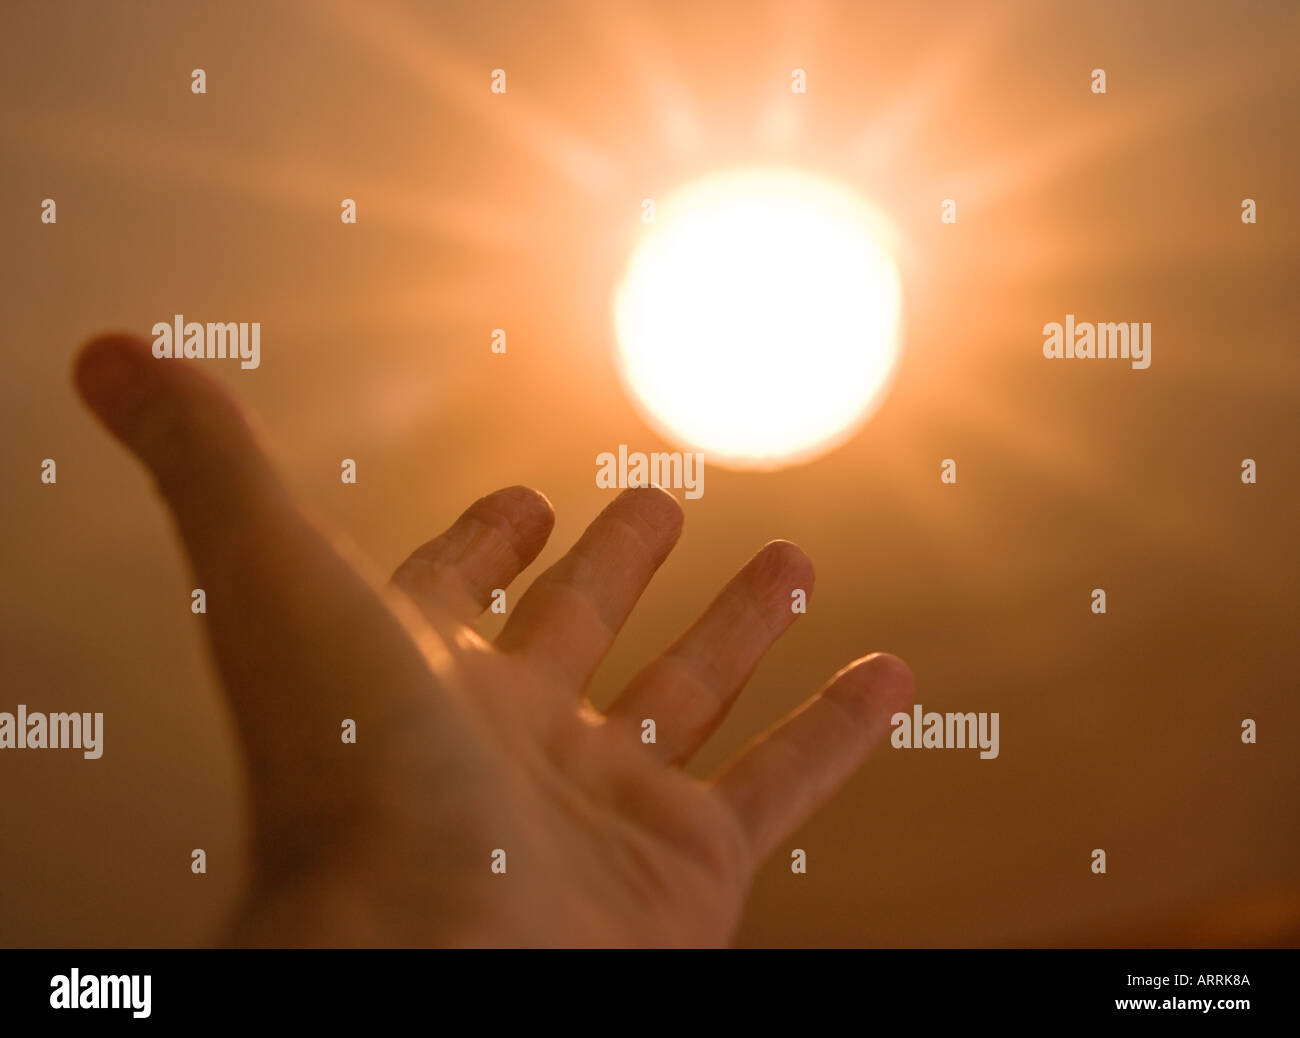 Hand reaching for sun - Stock Image